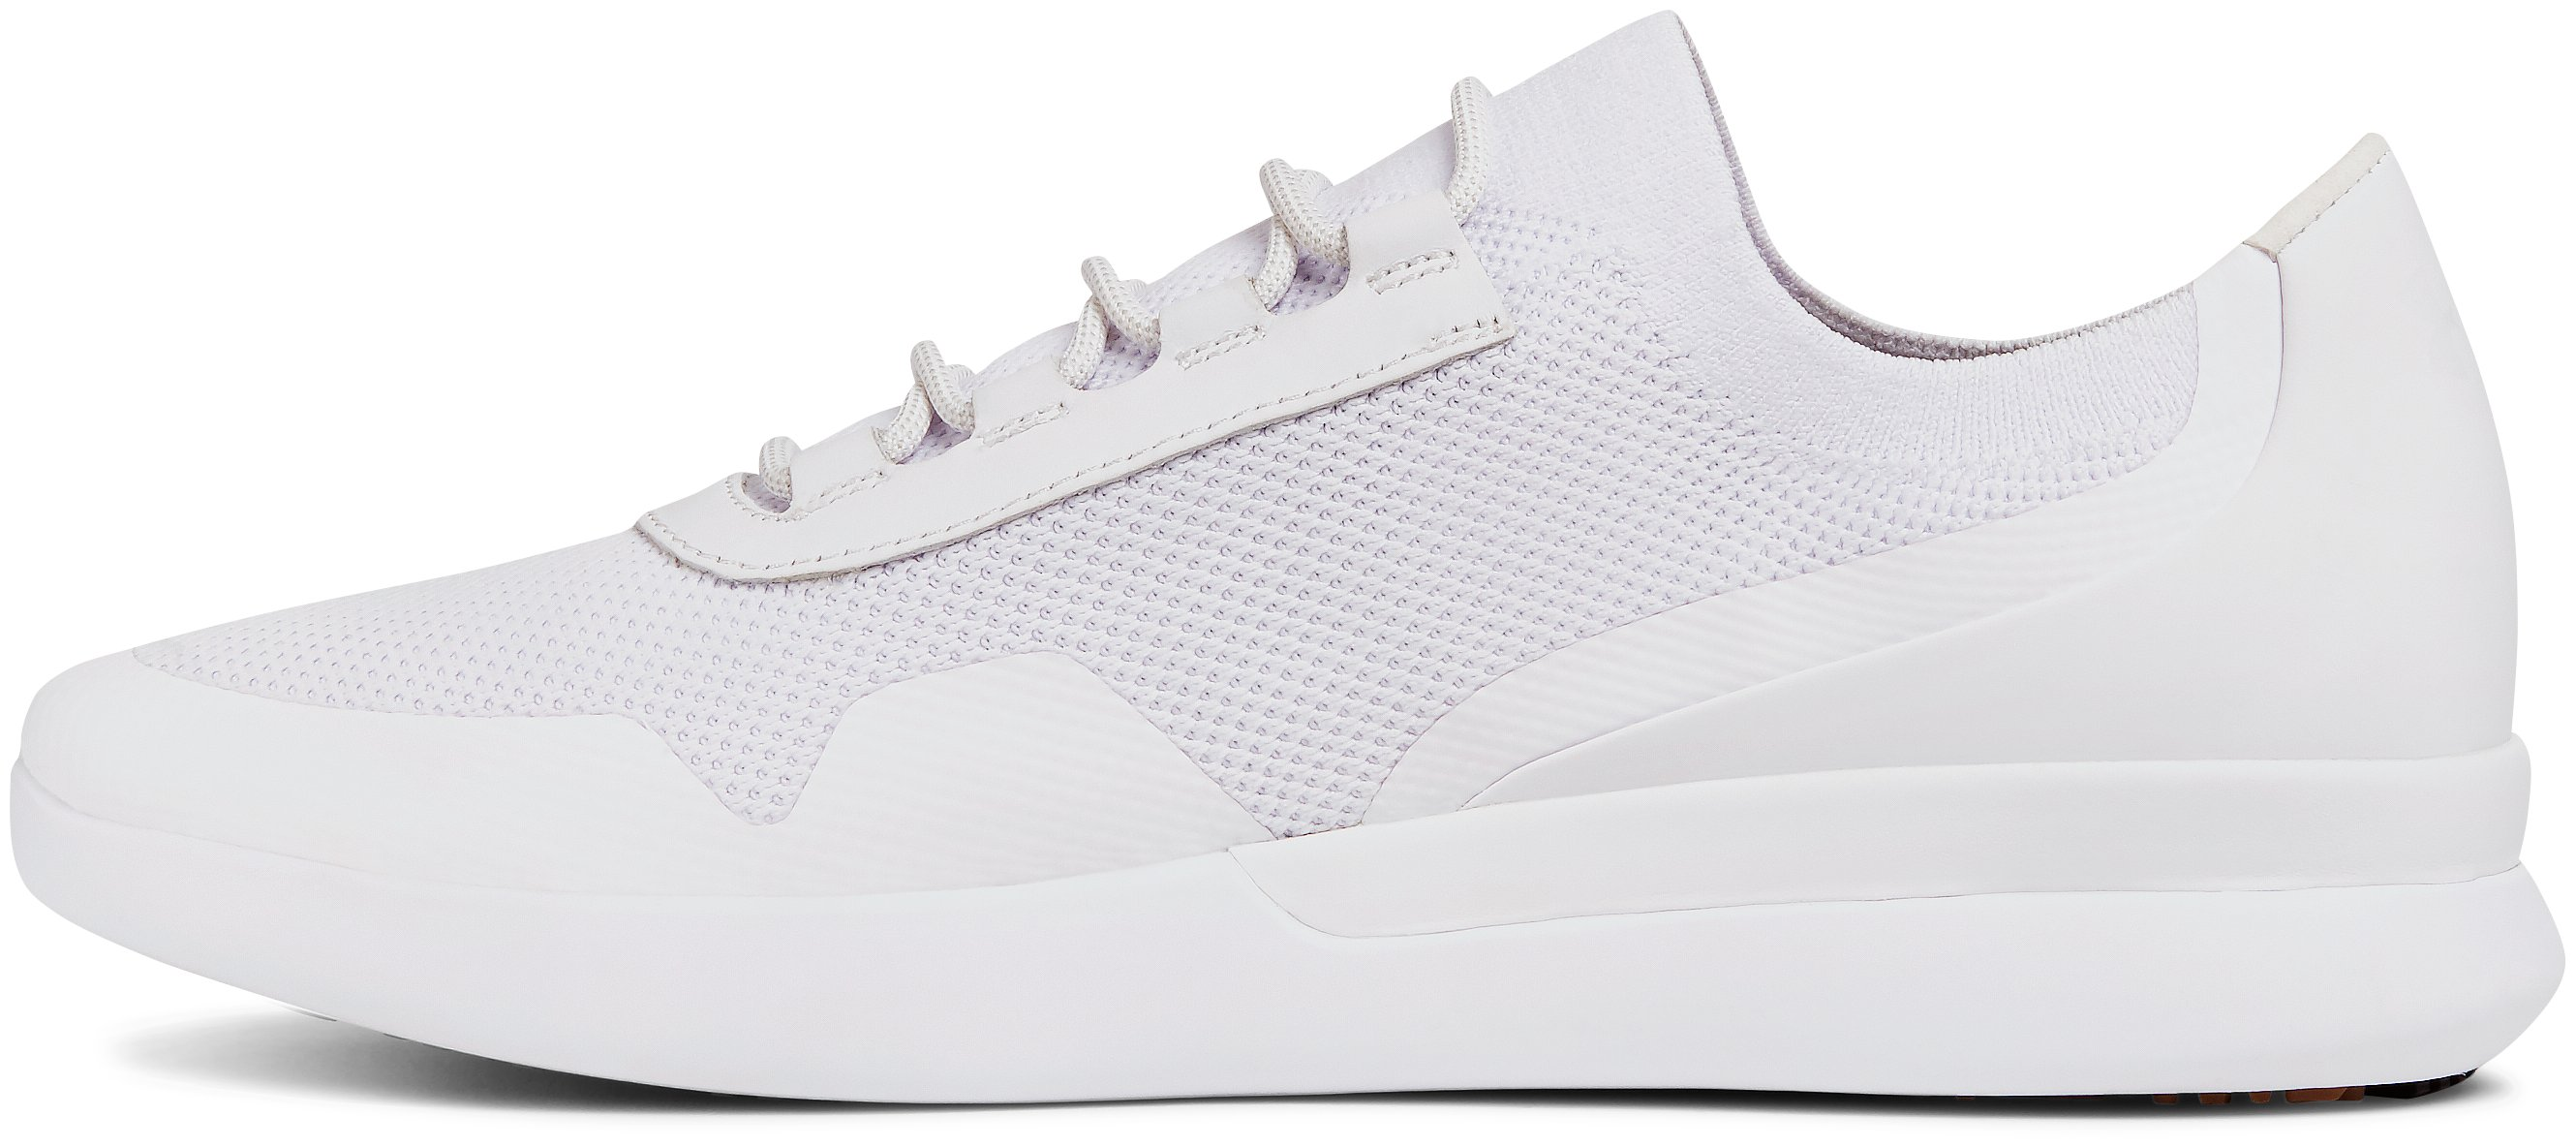 Men's UAS Runaway 2.0 - Leather Shoes, White,